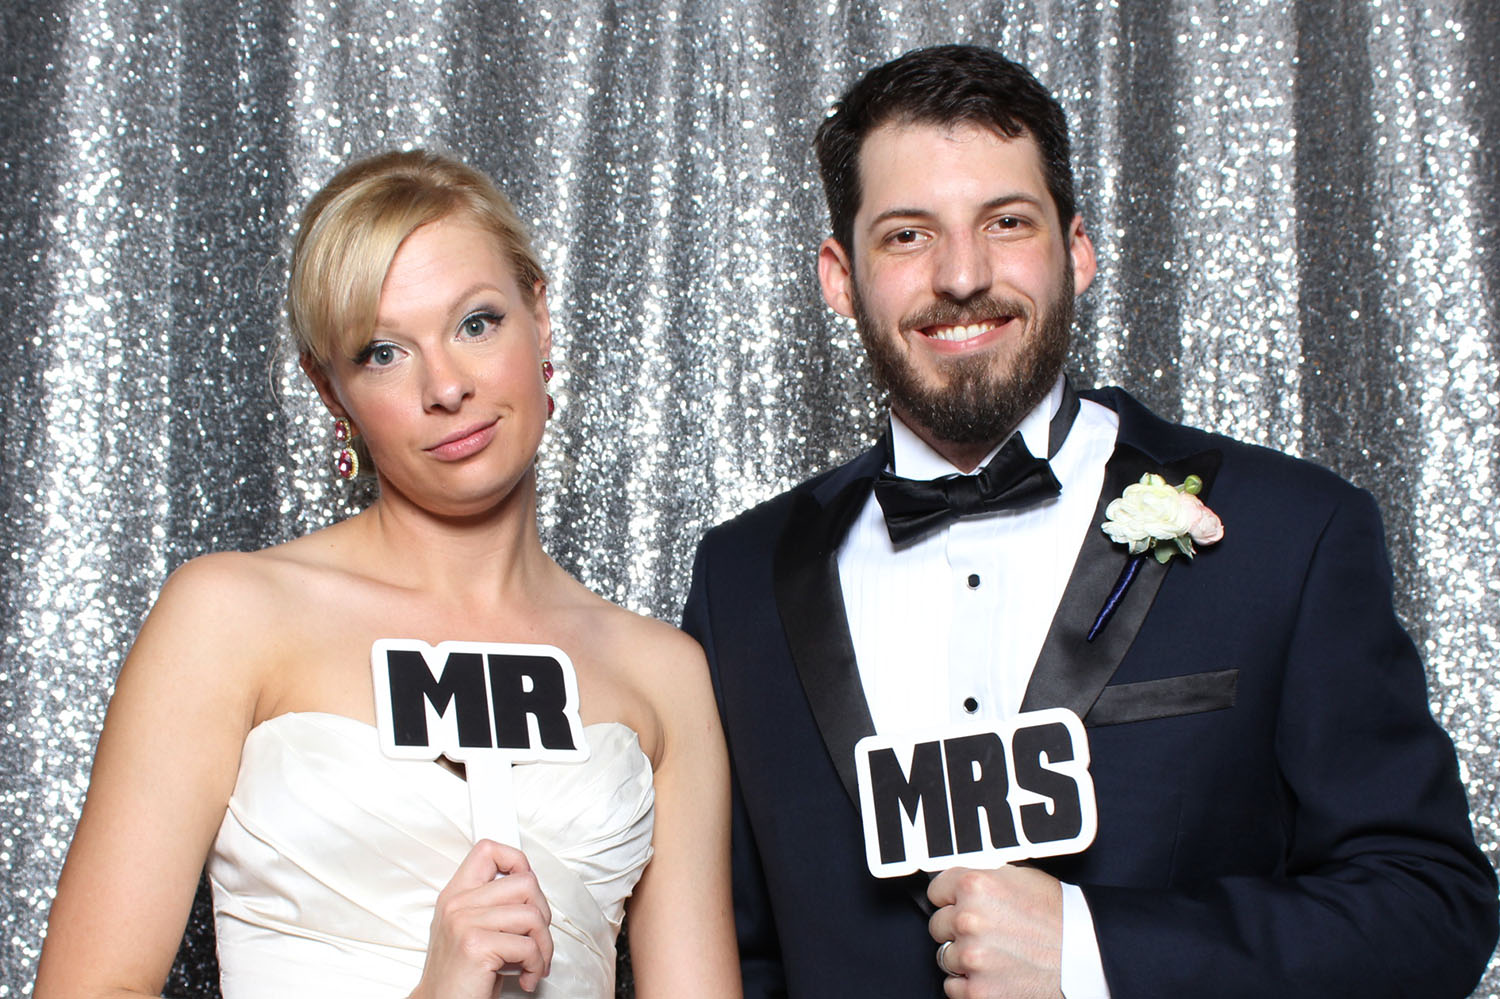 philadelphia-photo-booth-wedding-bellevue-hyatt